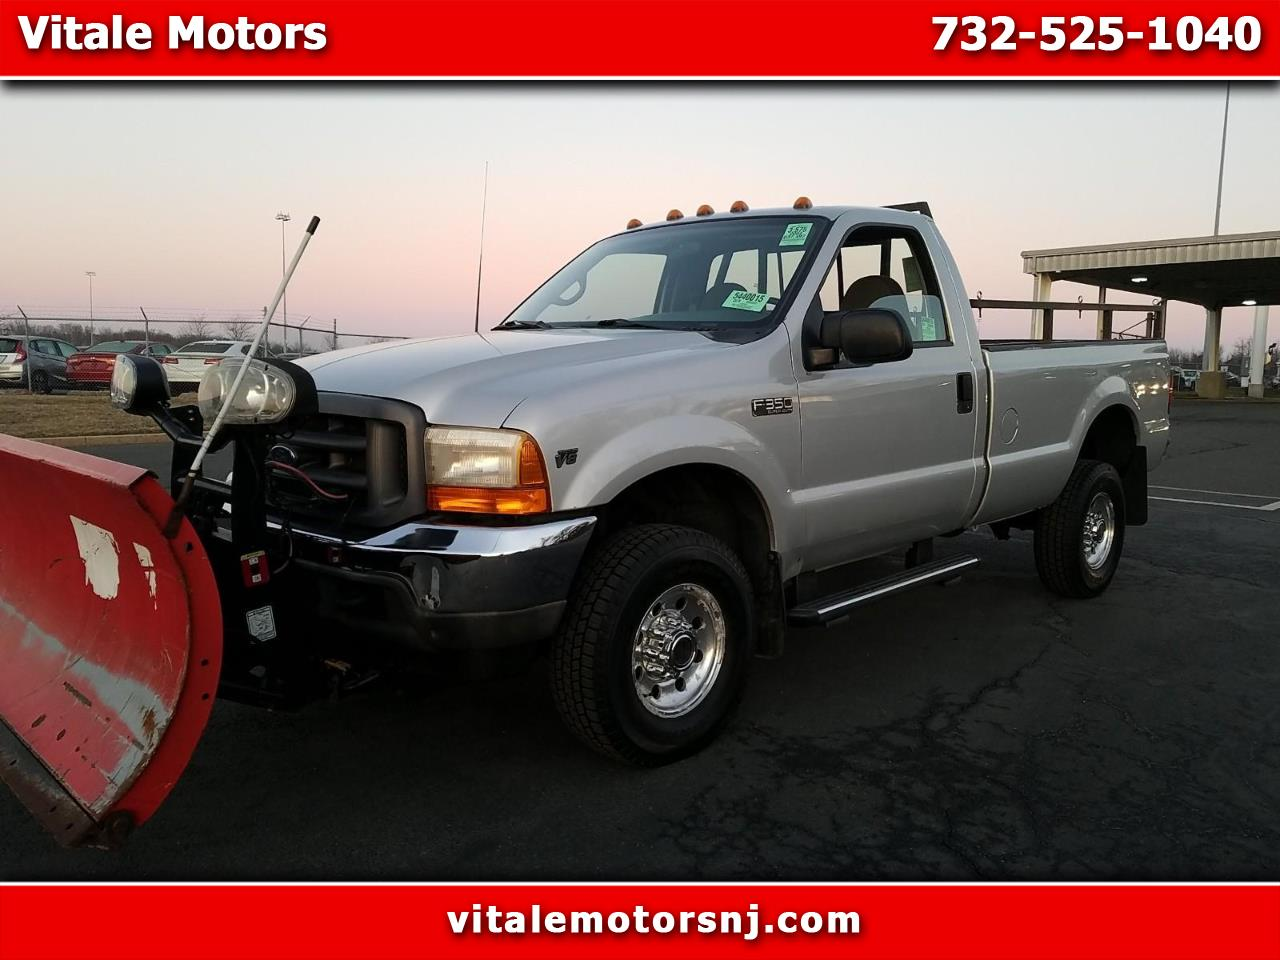 Photo 2002 Ford F-350 SD REG. CAB LONG BED 4X4 WITH SNOW PLOW 37K MILES